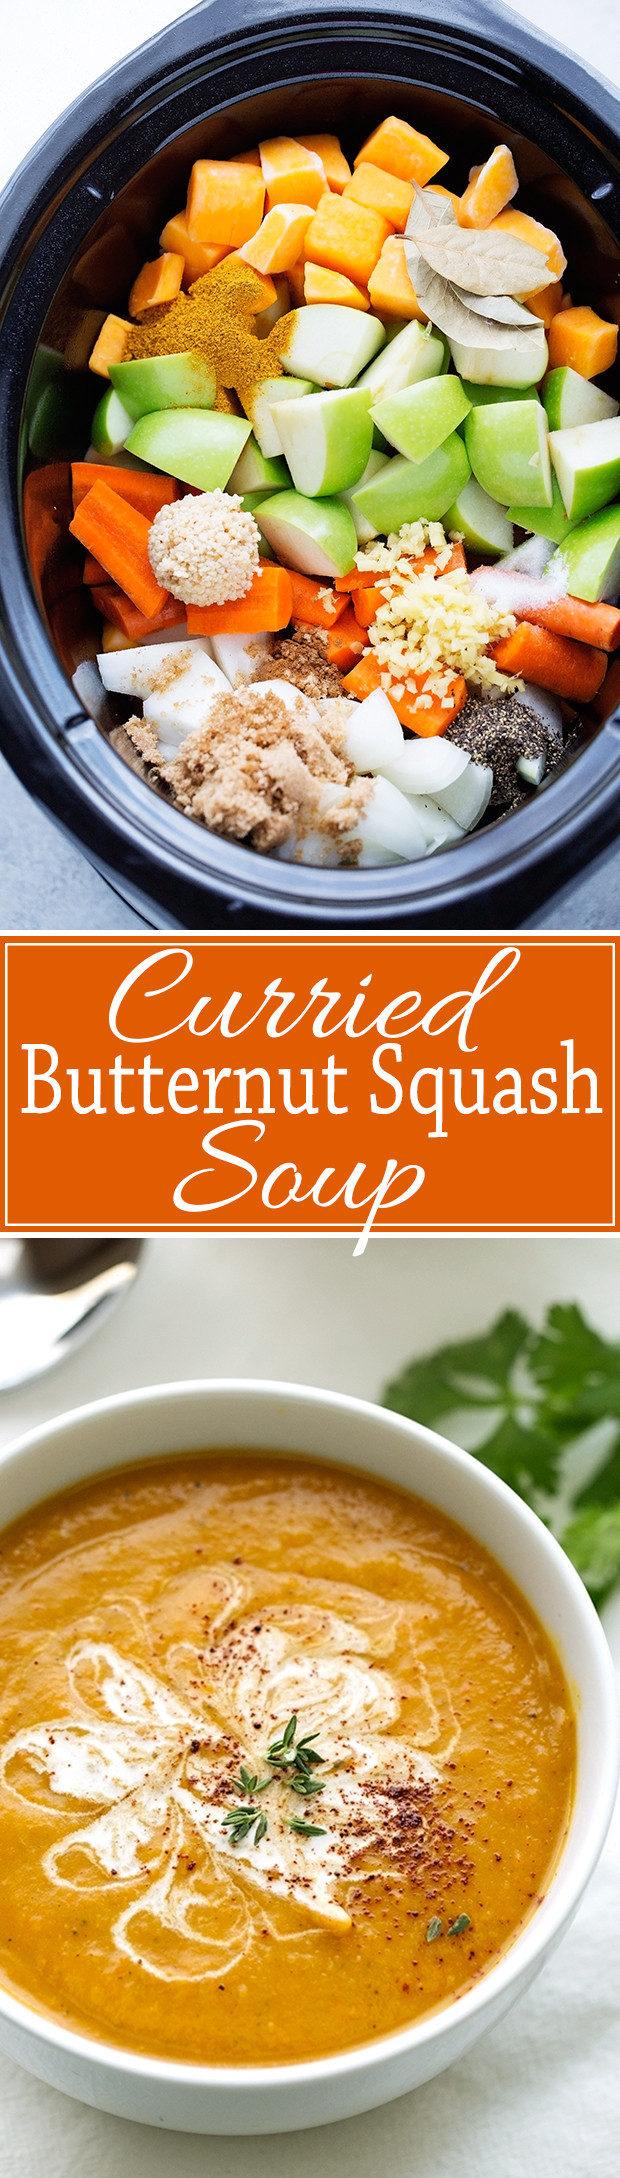 Curry Butternut Squash Soup  Slow Cooker Curried Butternut Squash Soup Recipe